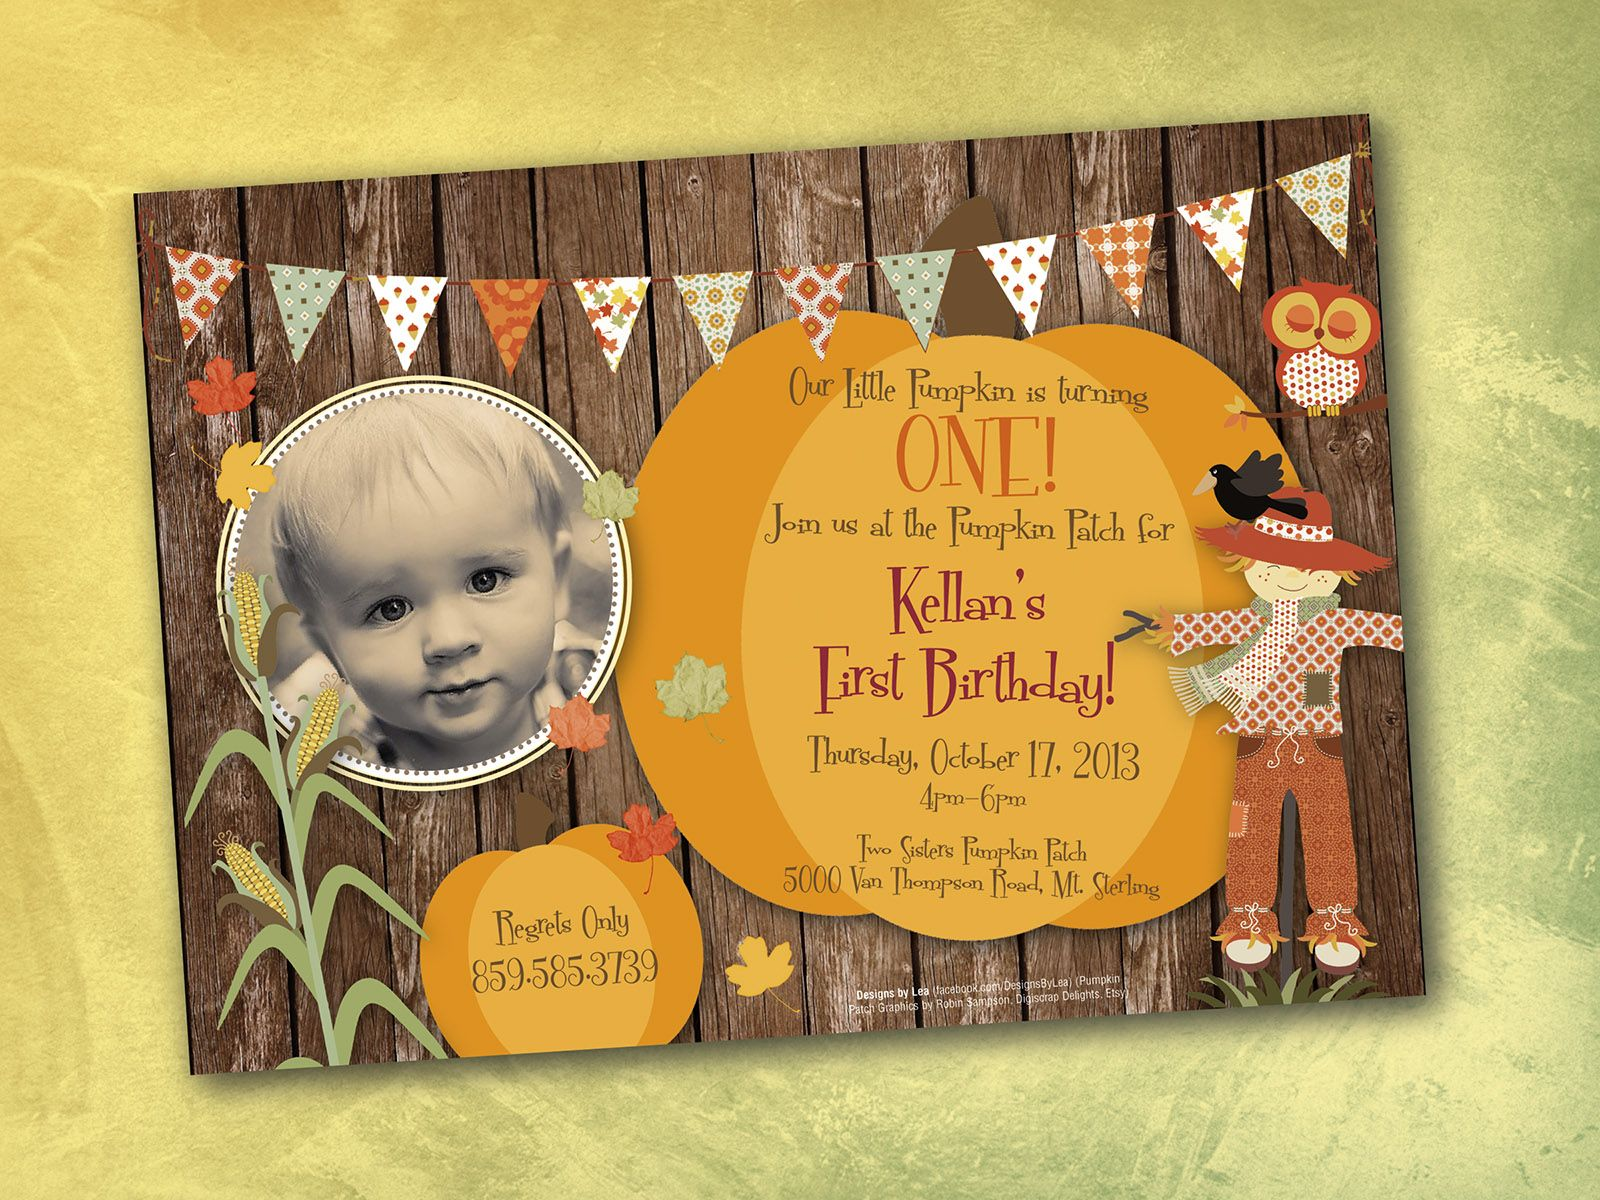 One Year Old Boy Birthday Invitation Pumpkin Patch Theme